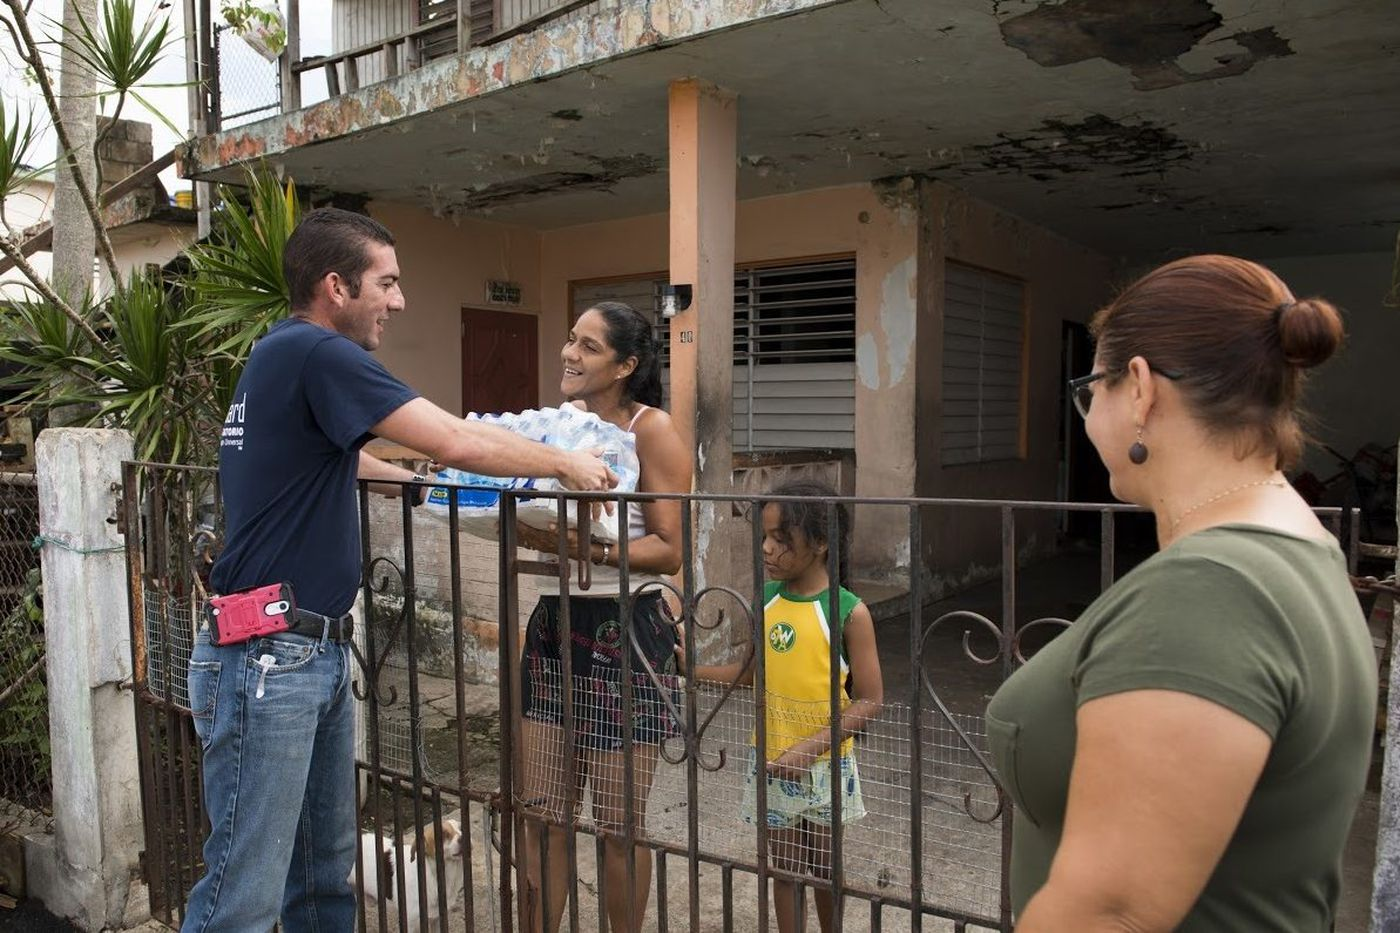 First, hurricane relief and recovery - and then rebuilding a stronger Puerto Rico | Perspective